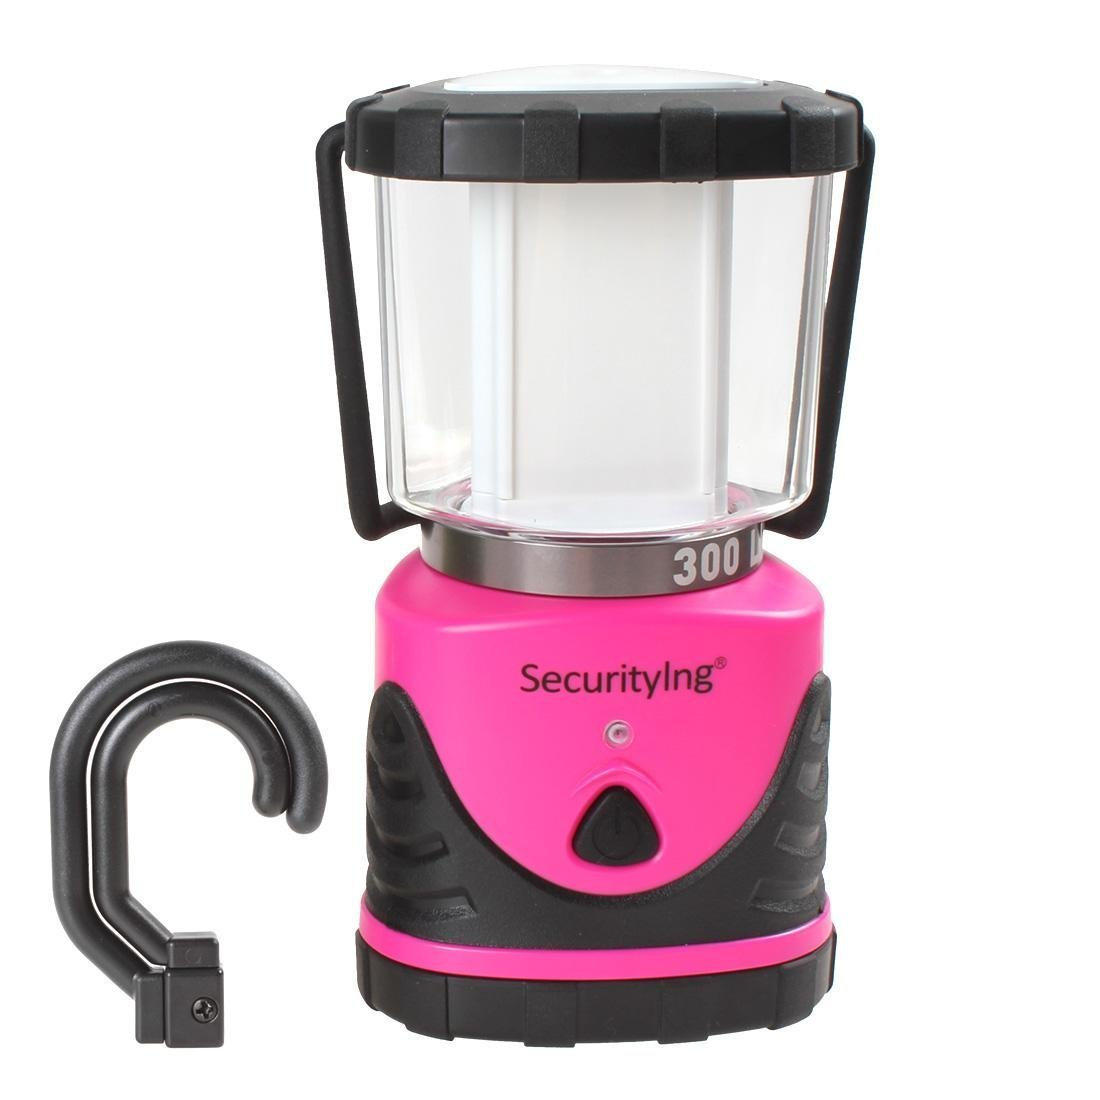 SecurityIng 10.63In Ultra Bright 300 Lumens 3 Modes 12 LED Water Resistant Shockproof Camping Lantern with Free Hanging Hook for Hiking, Emergencies, Hurricanes, Outages Pink